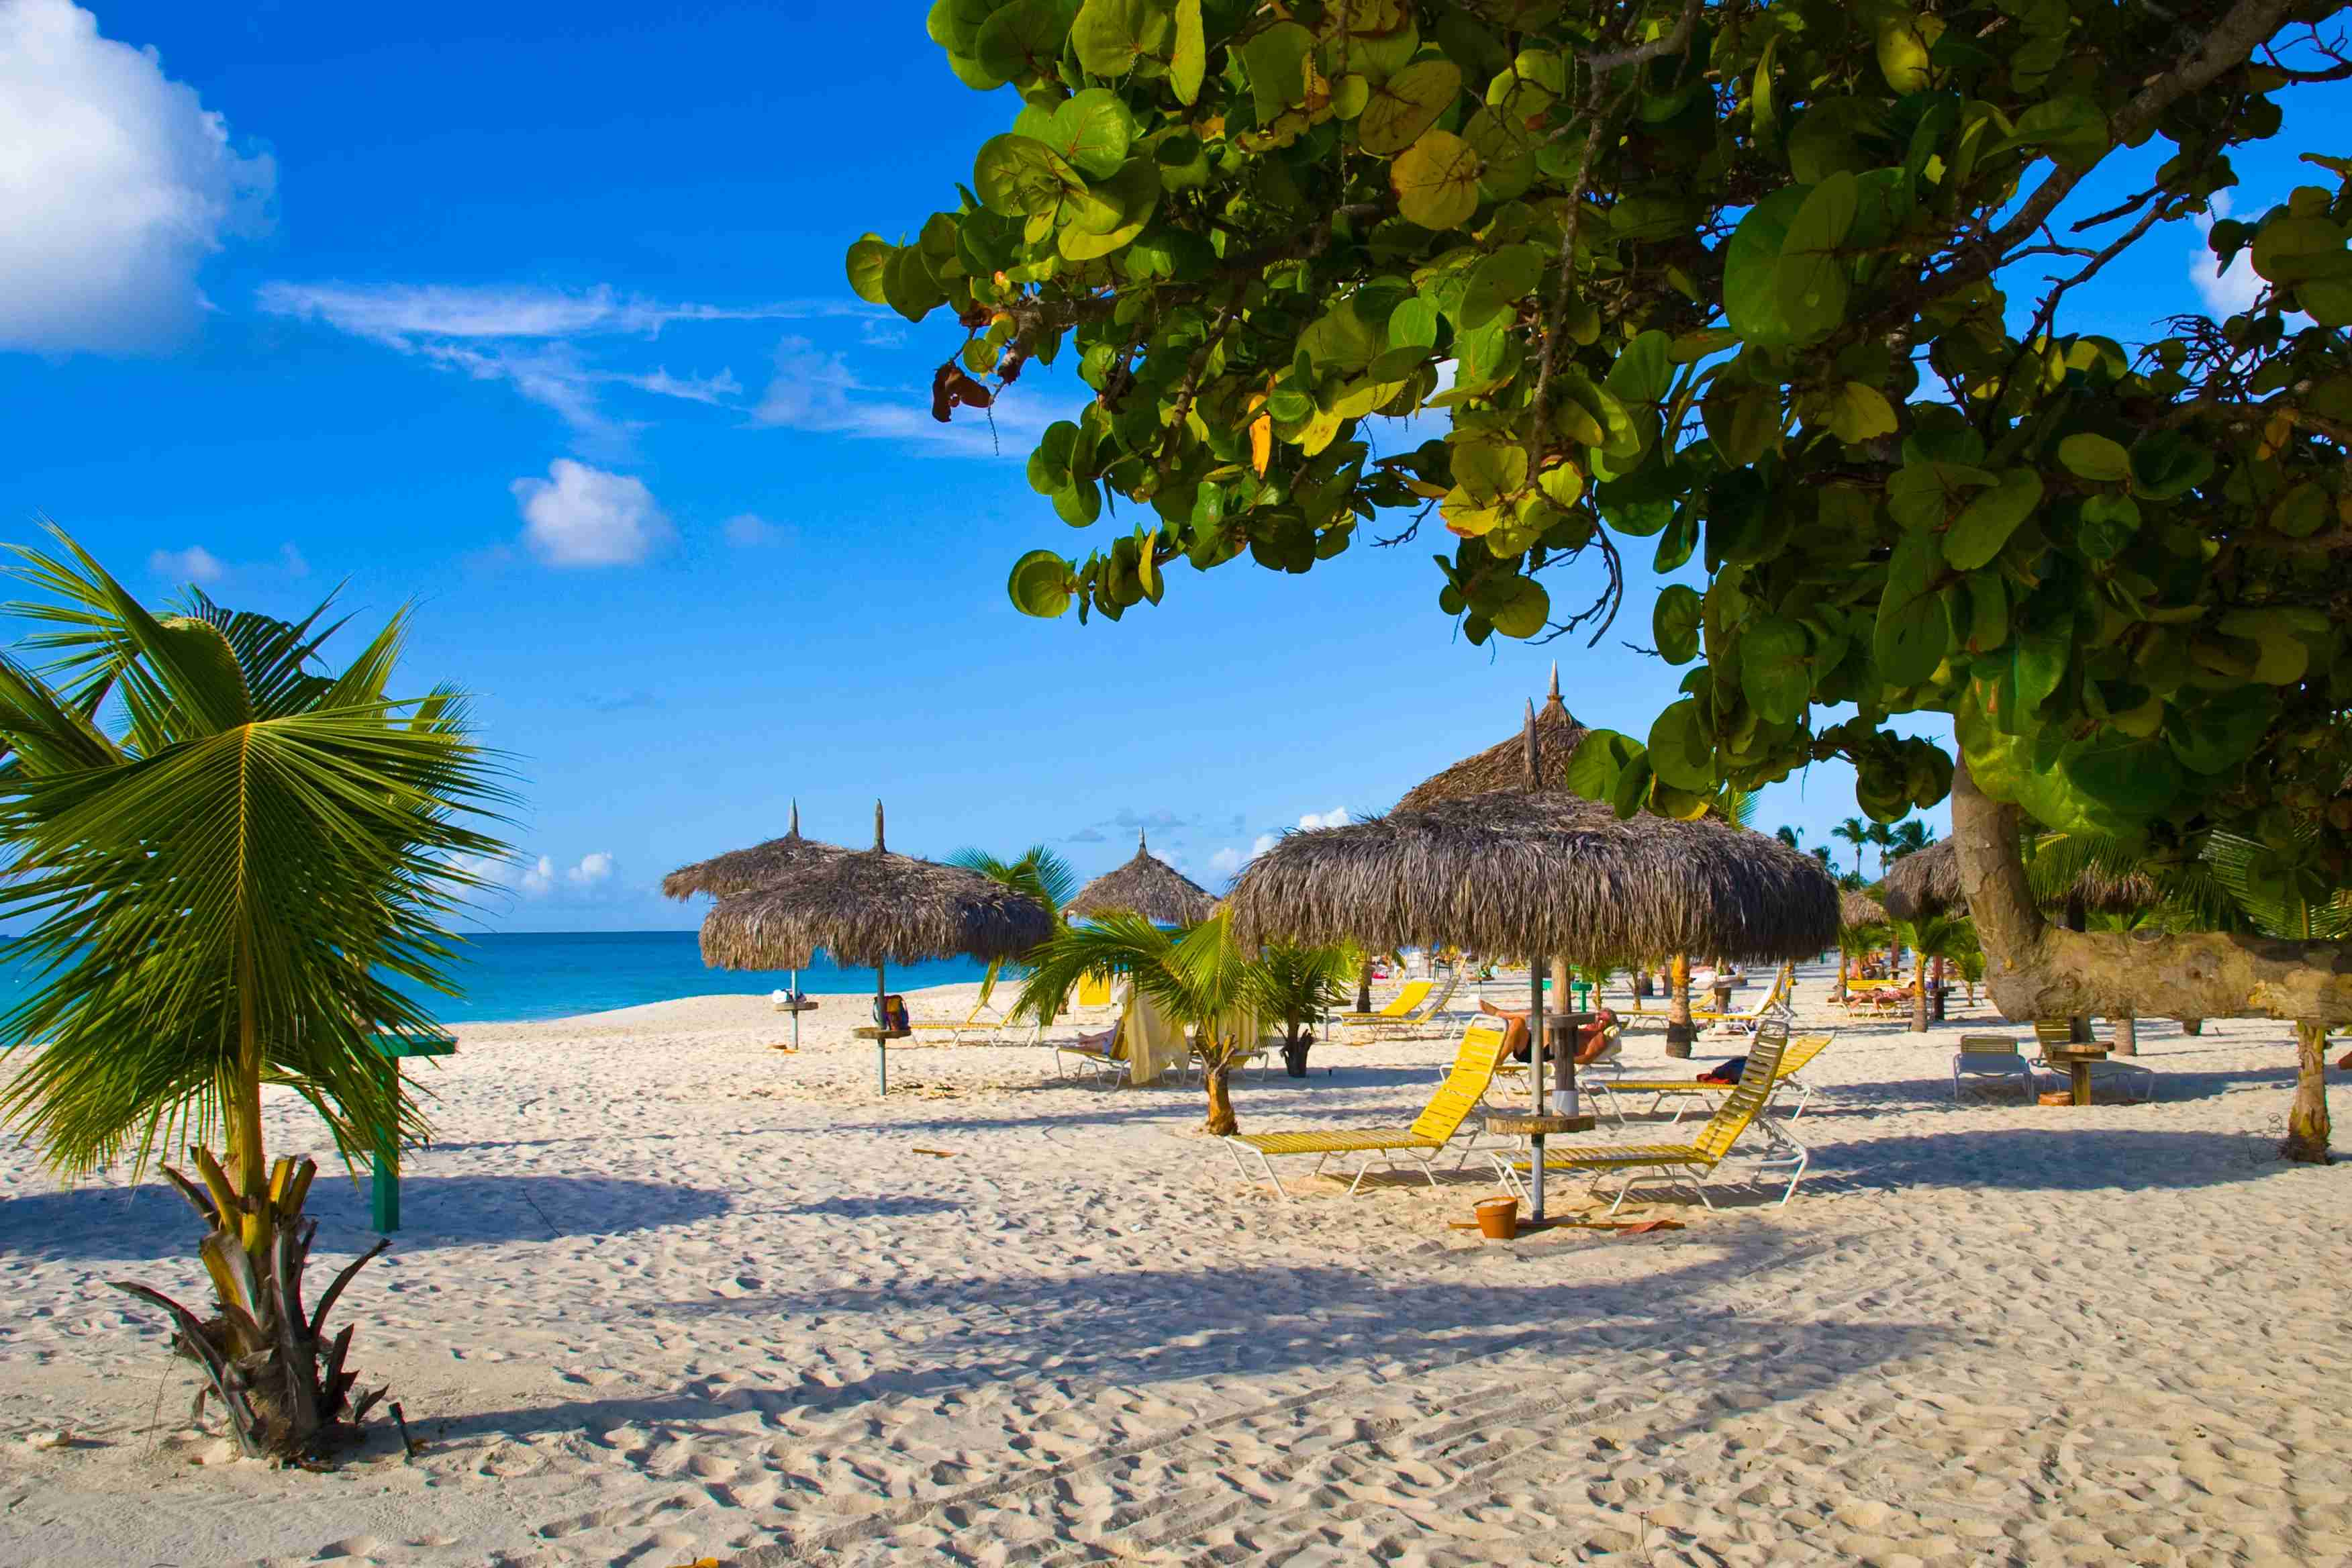 Eagle Beach in Aruba was ranked the third best beach in the world.